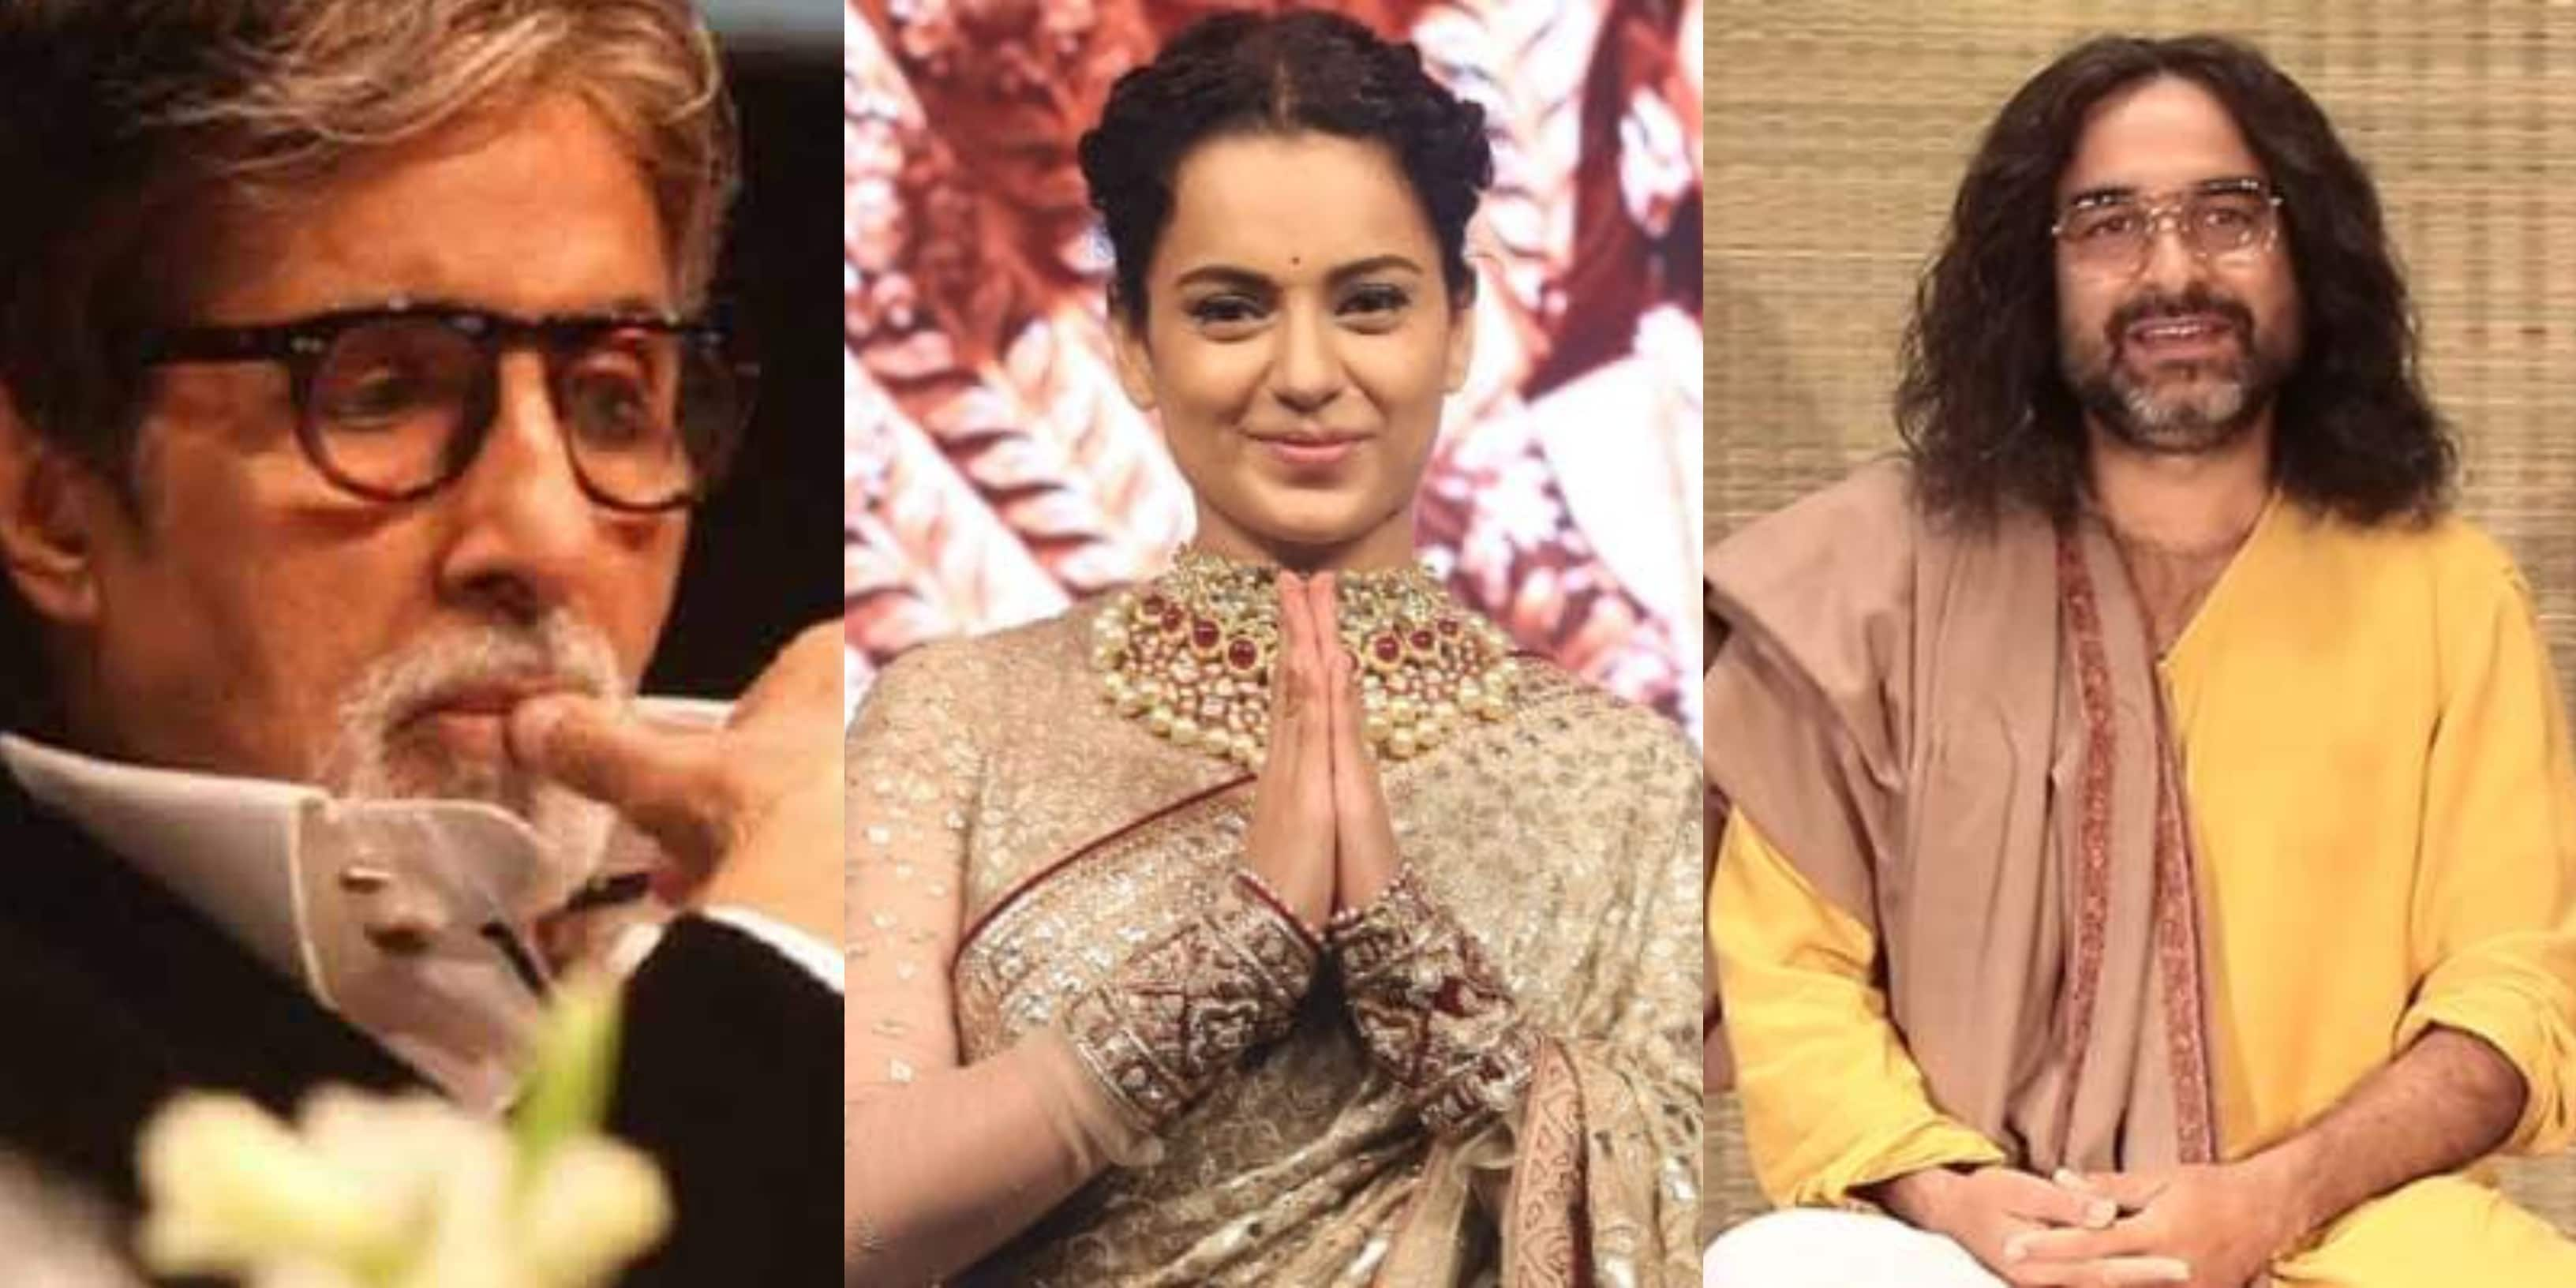 Hindi Diwas 2020 5 Bollywood Celebs We Would Love To Have As Our Hindi Teachers Desimartini